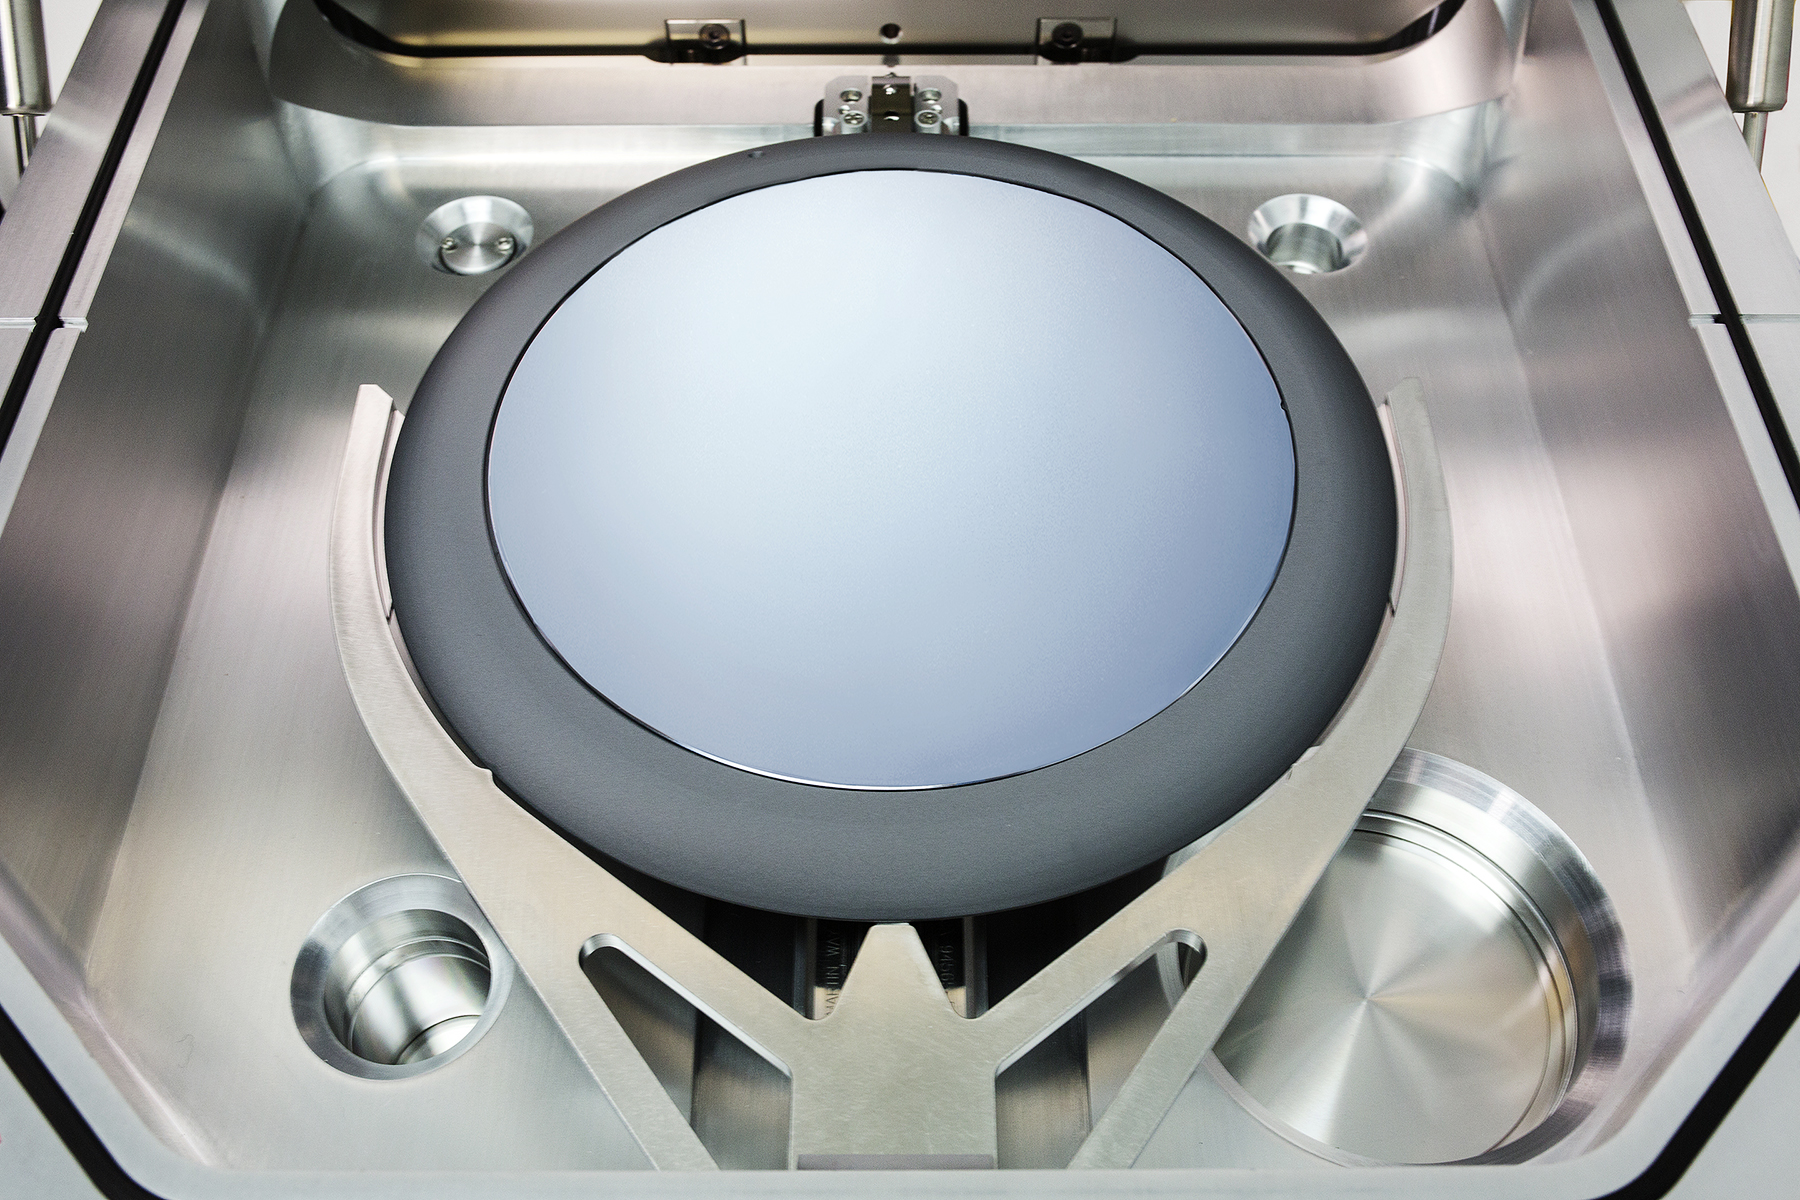 187 Veeco S Single Wafer Mocvd System Used To Speed Gan